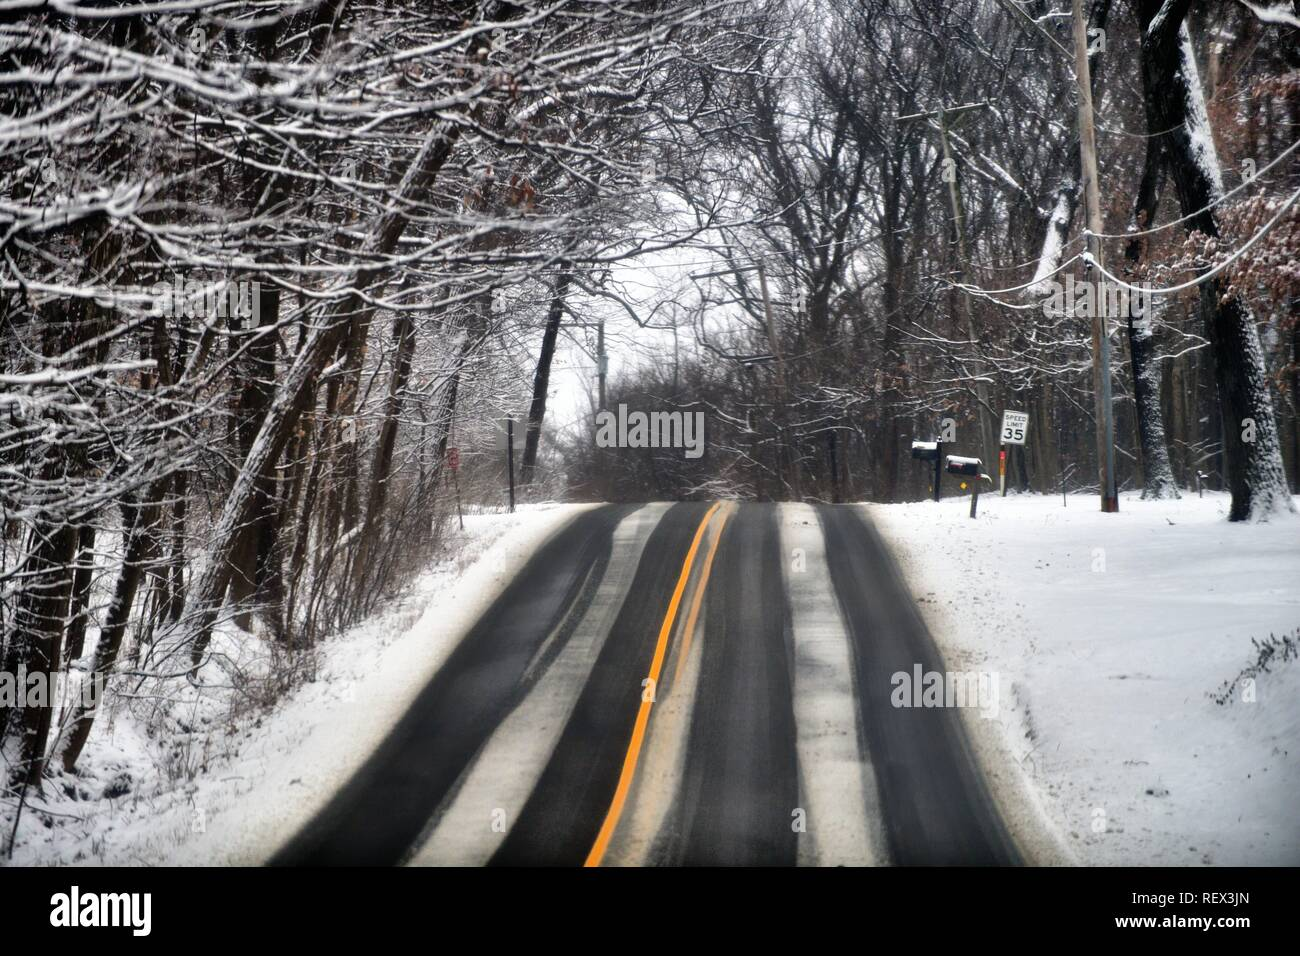 Wayne, Illinois, USA. A country highway during a snow shows evidence of slippery conditions as it crests the top of a hill. - Stock Image